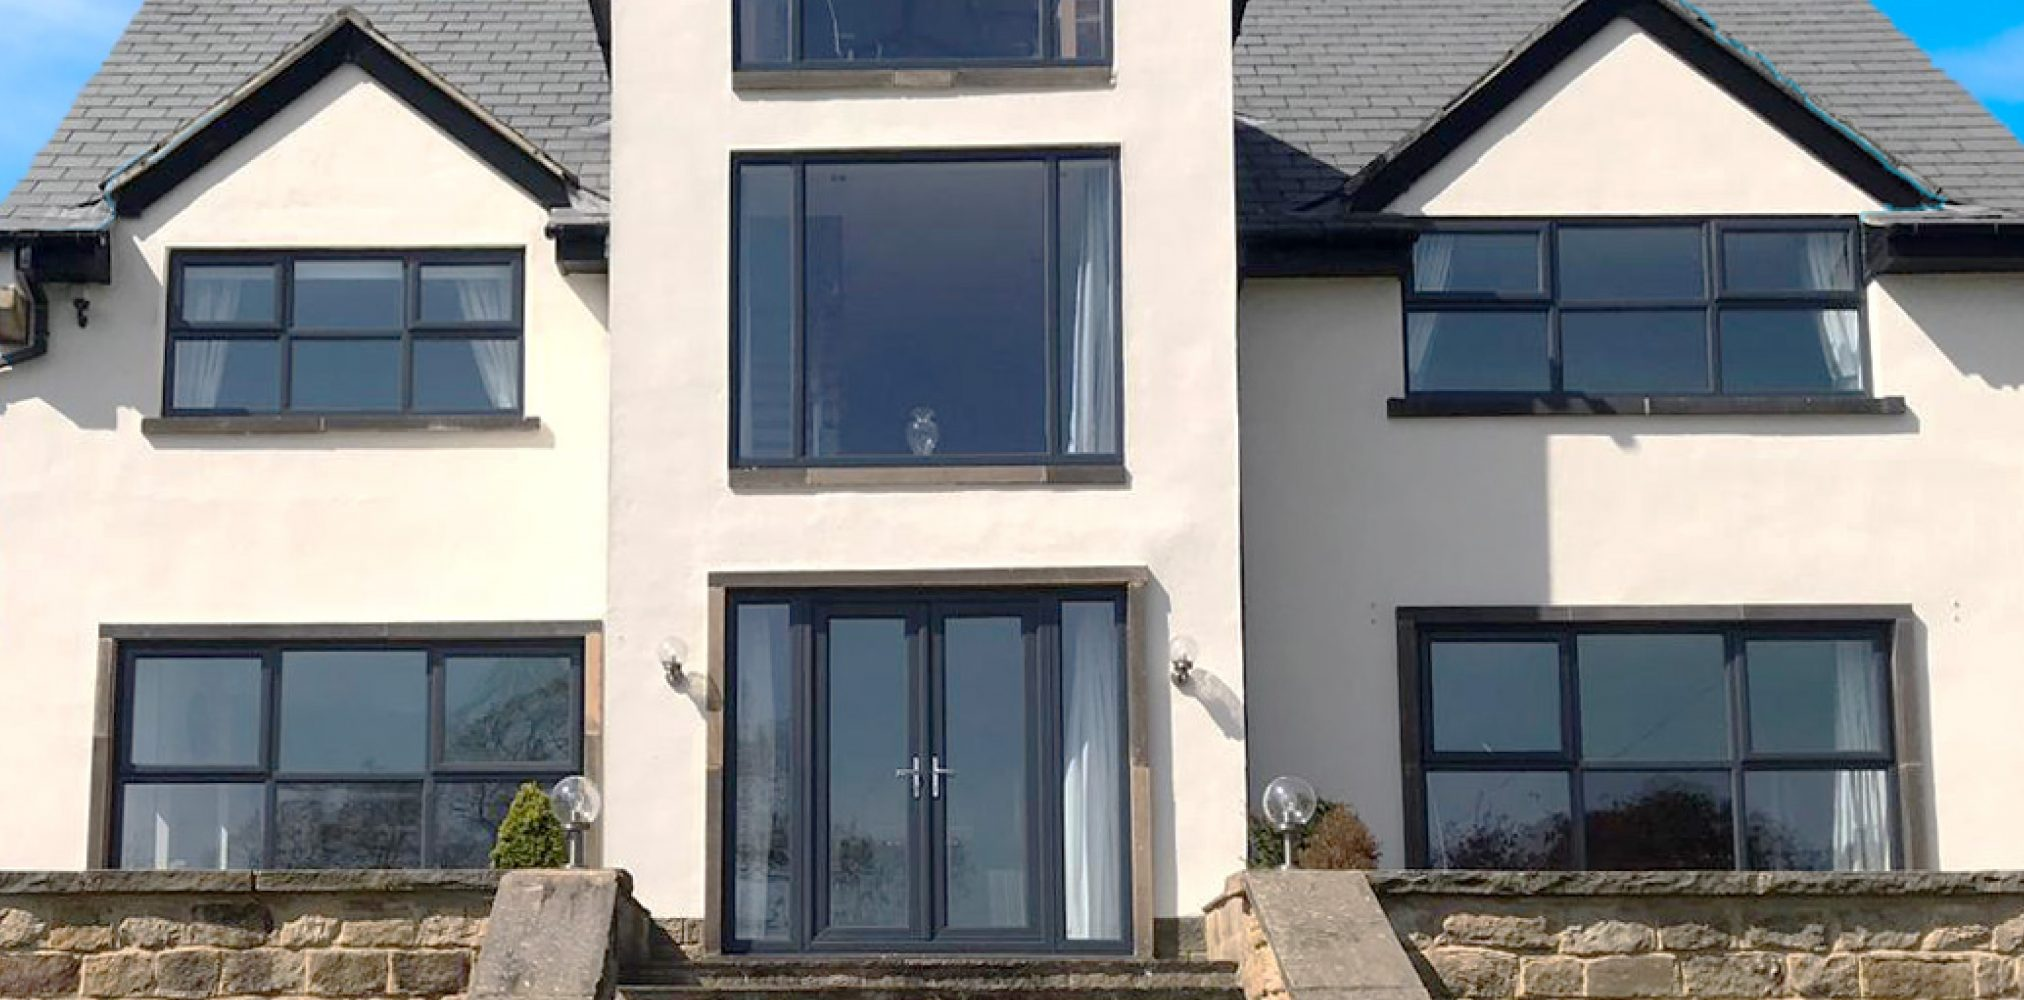 House exterior painted white, uPVC windows and uPVC doors spray painted grey